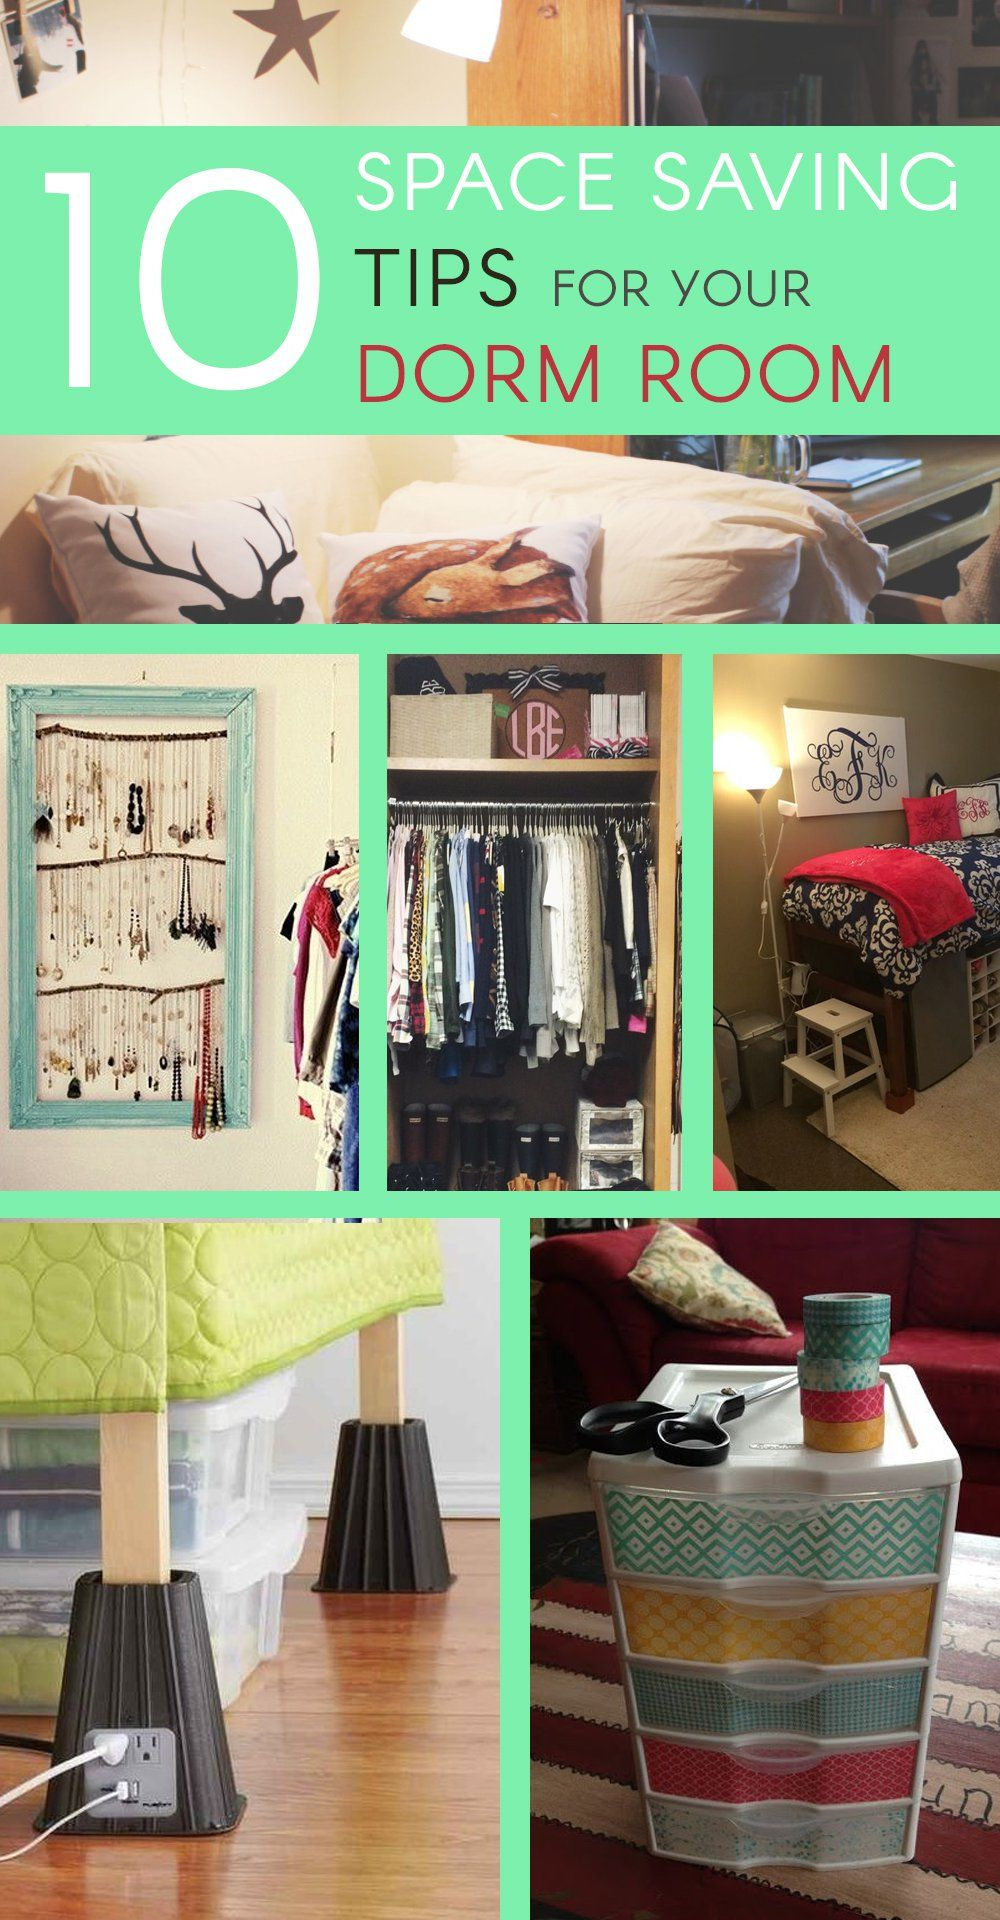 to wear - Organizing for Dormtips a small closet video